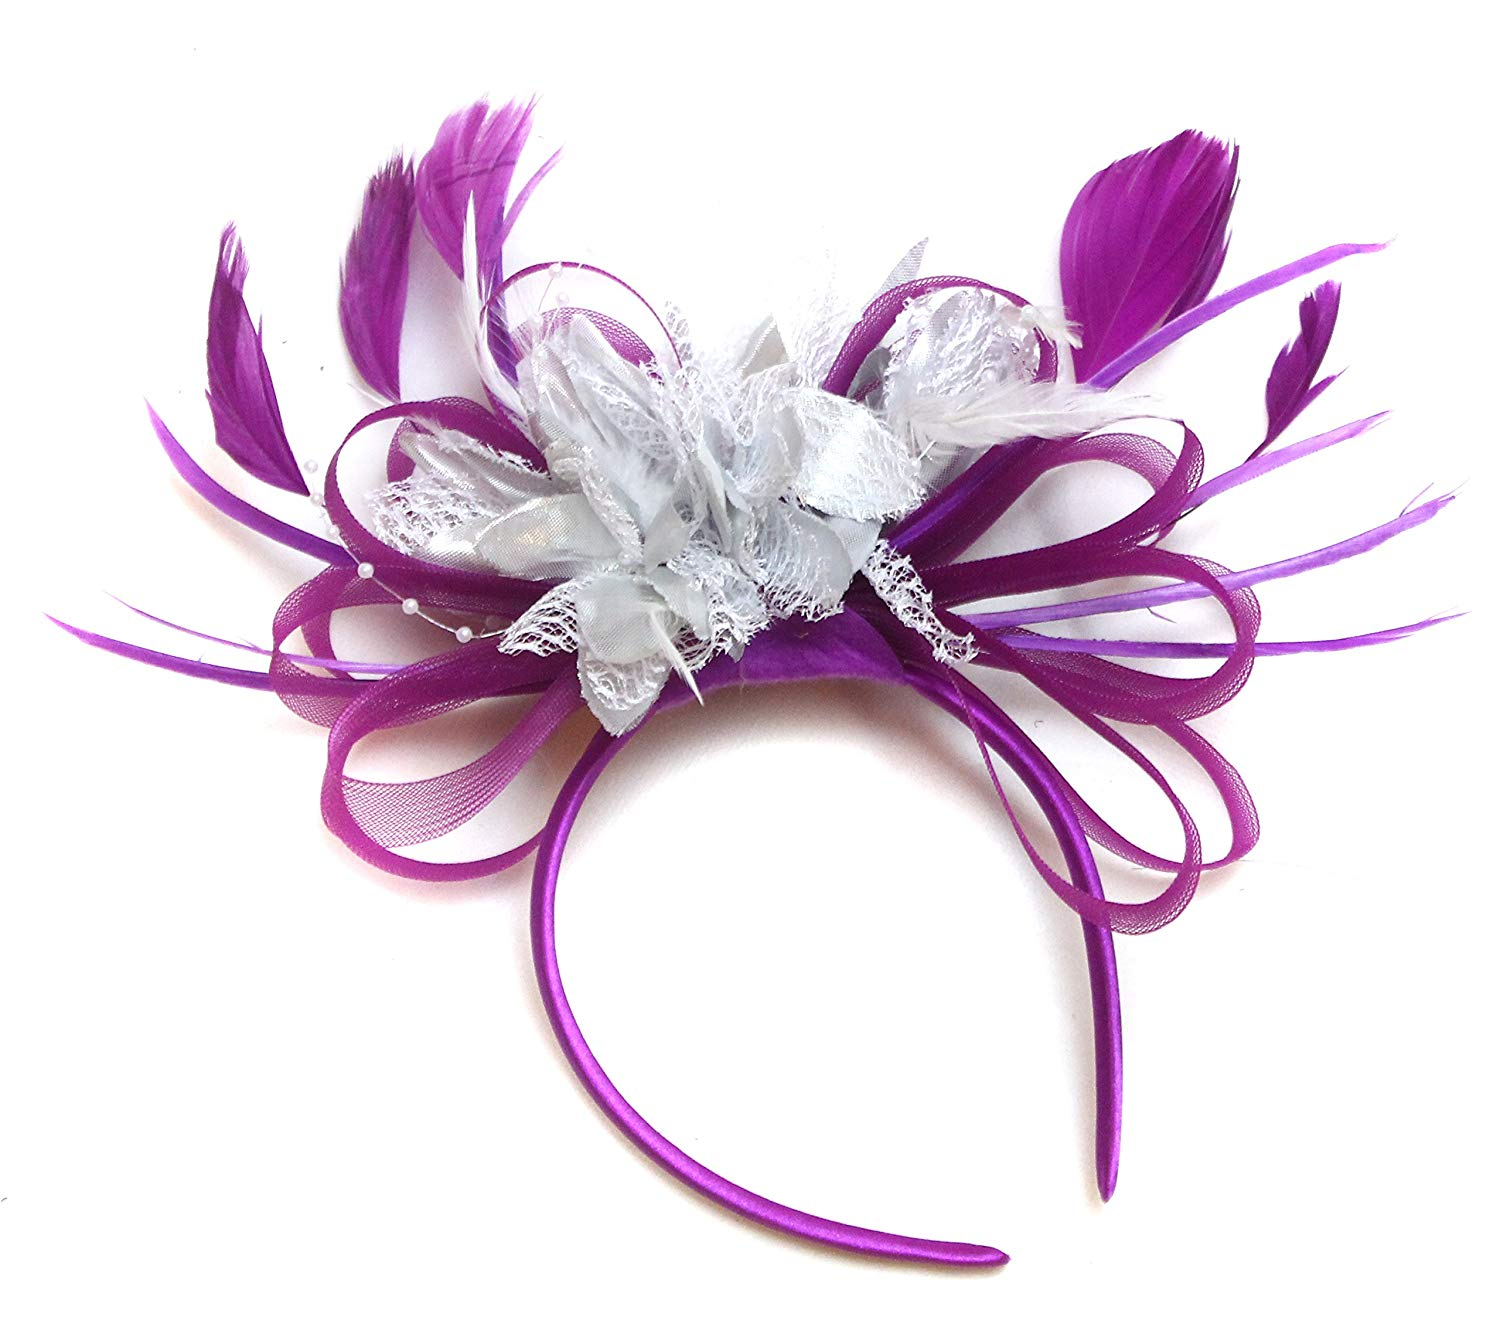 b7c25d9670a4f Get Quotations · Plum Magenta and Silver Feather Hair Fascinator Headband  Wedding Royal Ascot Races Ladies